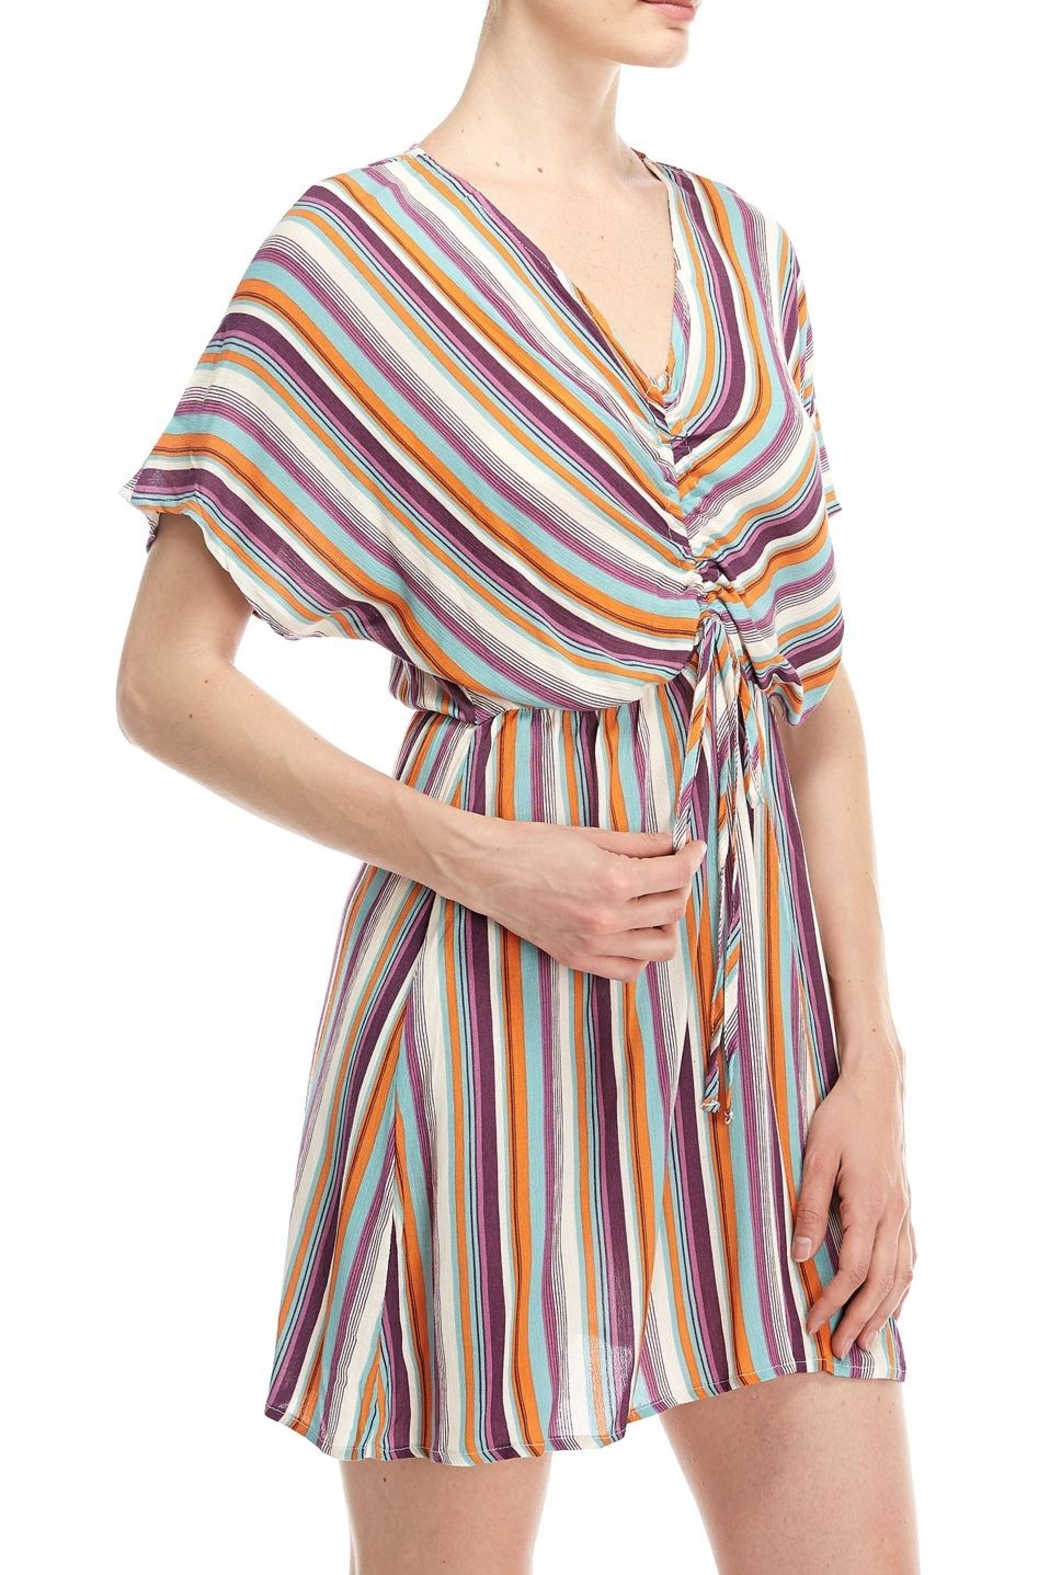 All In Favor Striped Tie Dress - Front Full Image